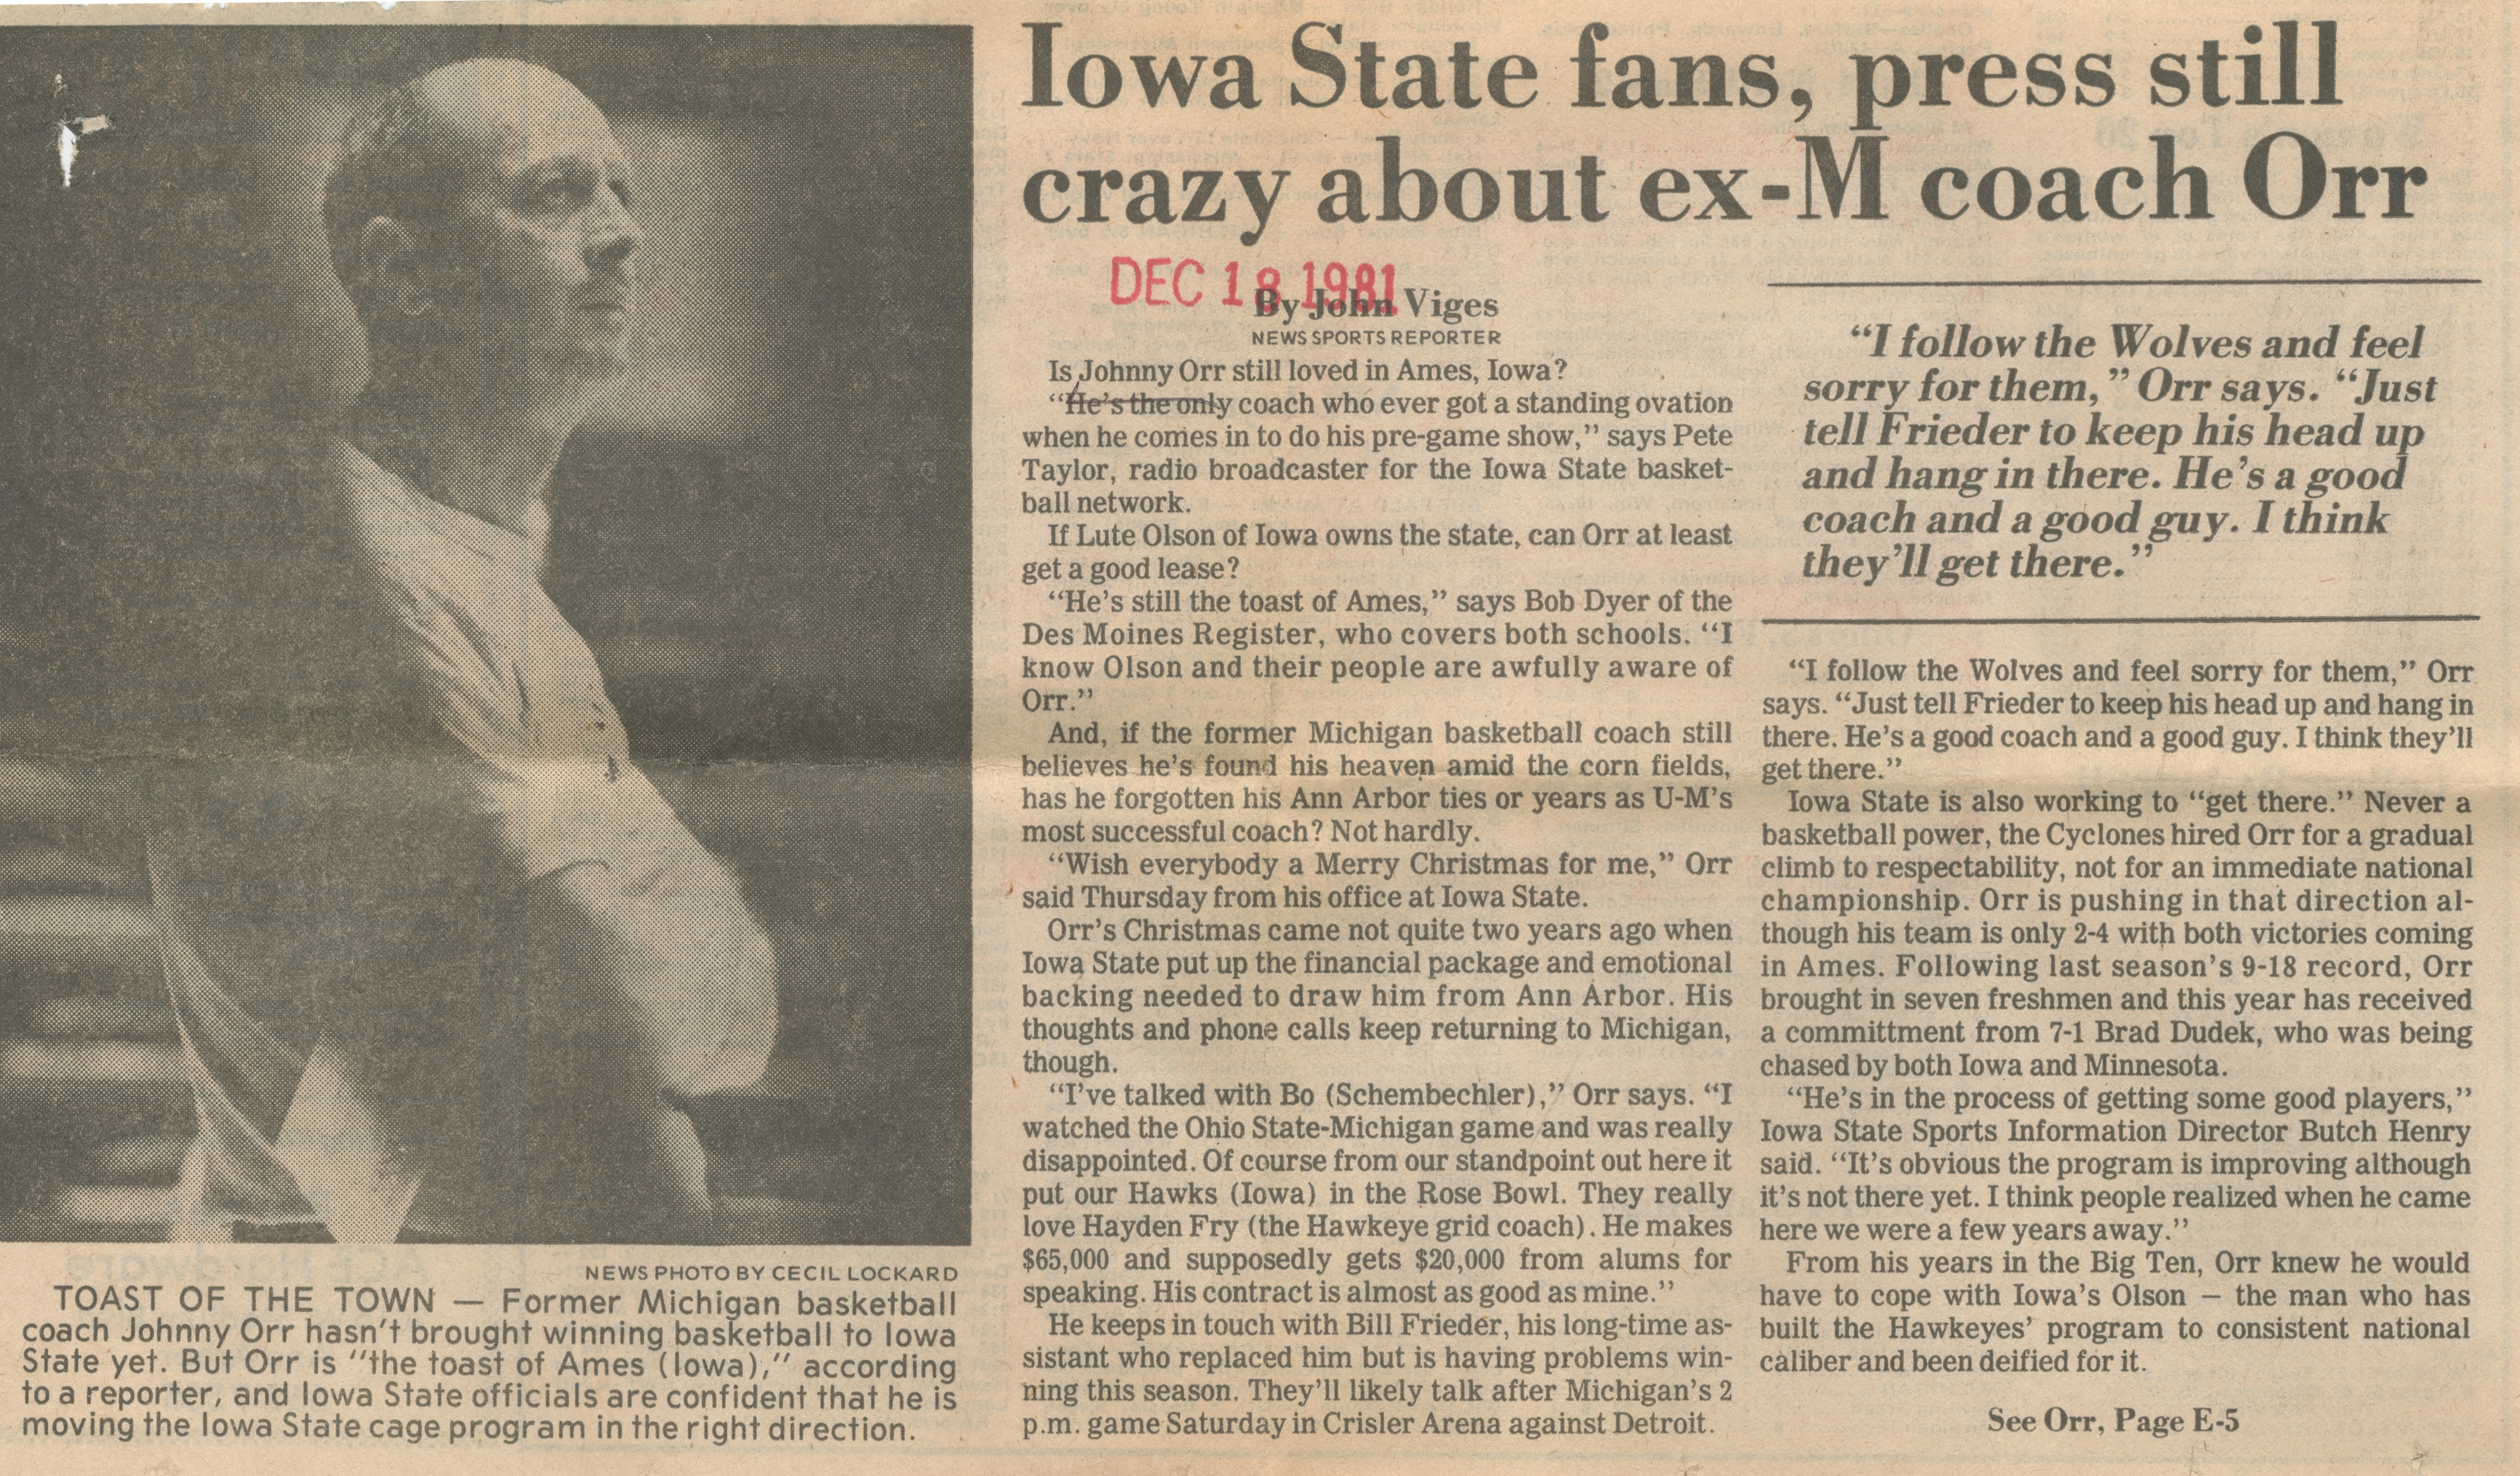 Iowa State Fans, Press Still Crazy About Ex-M Coach Orr image